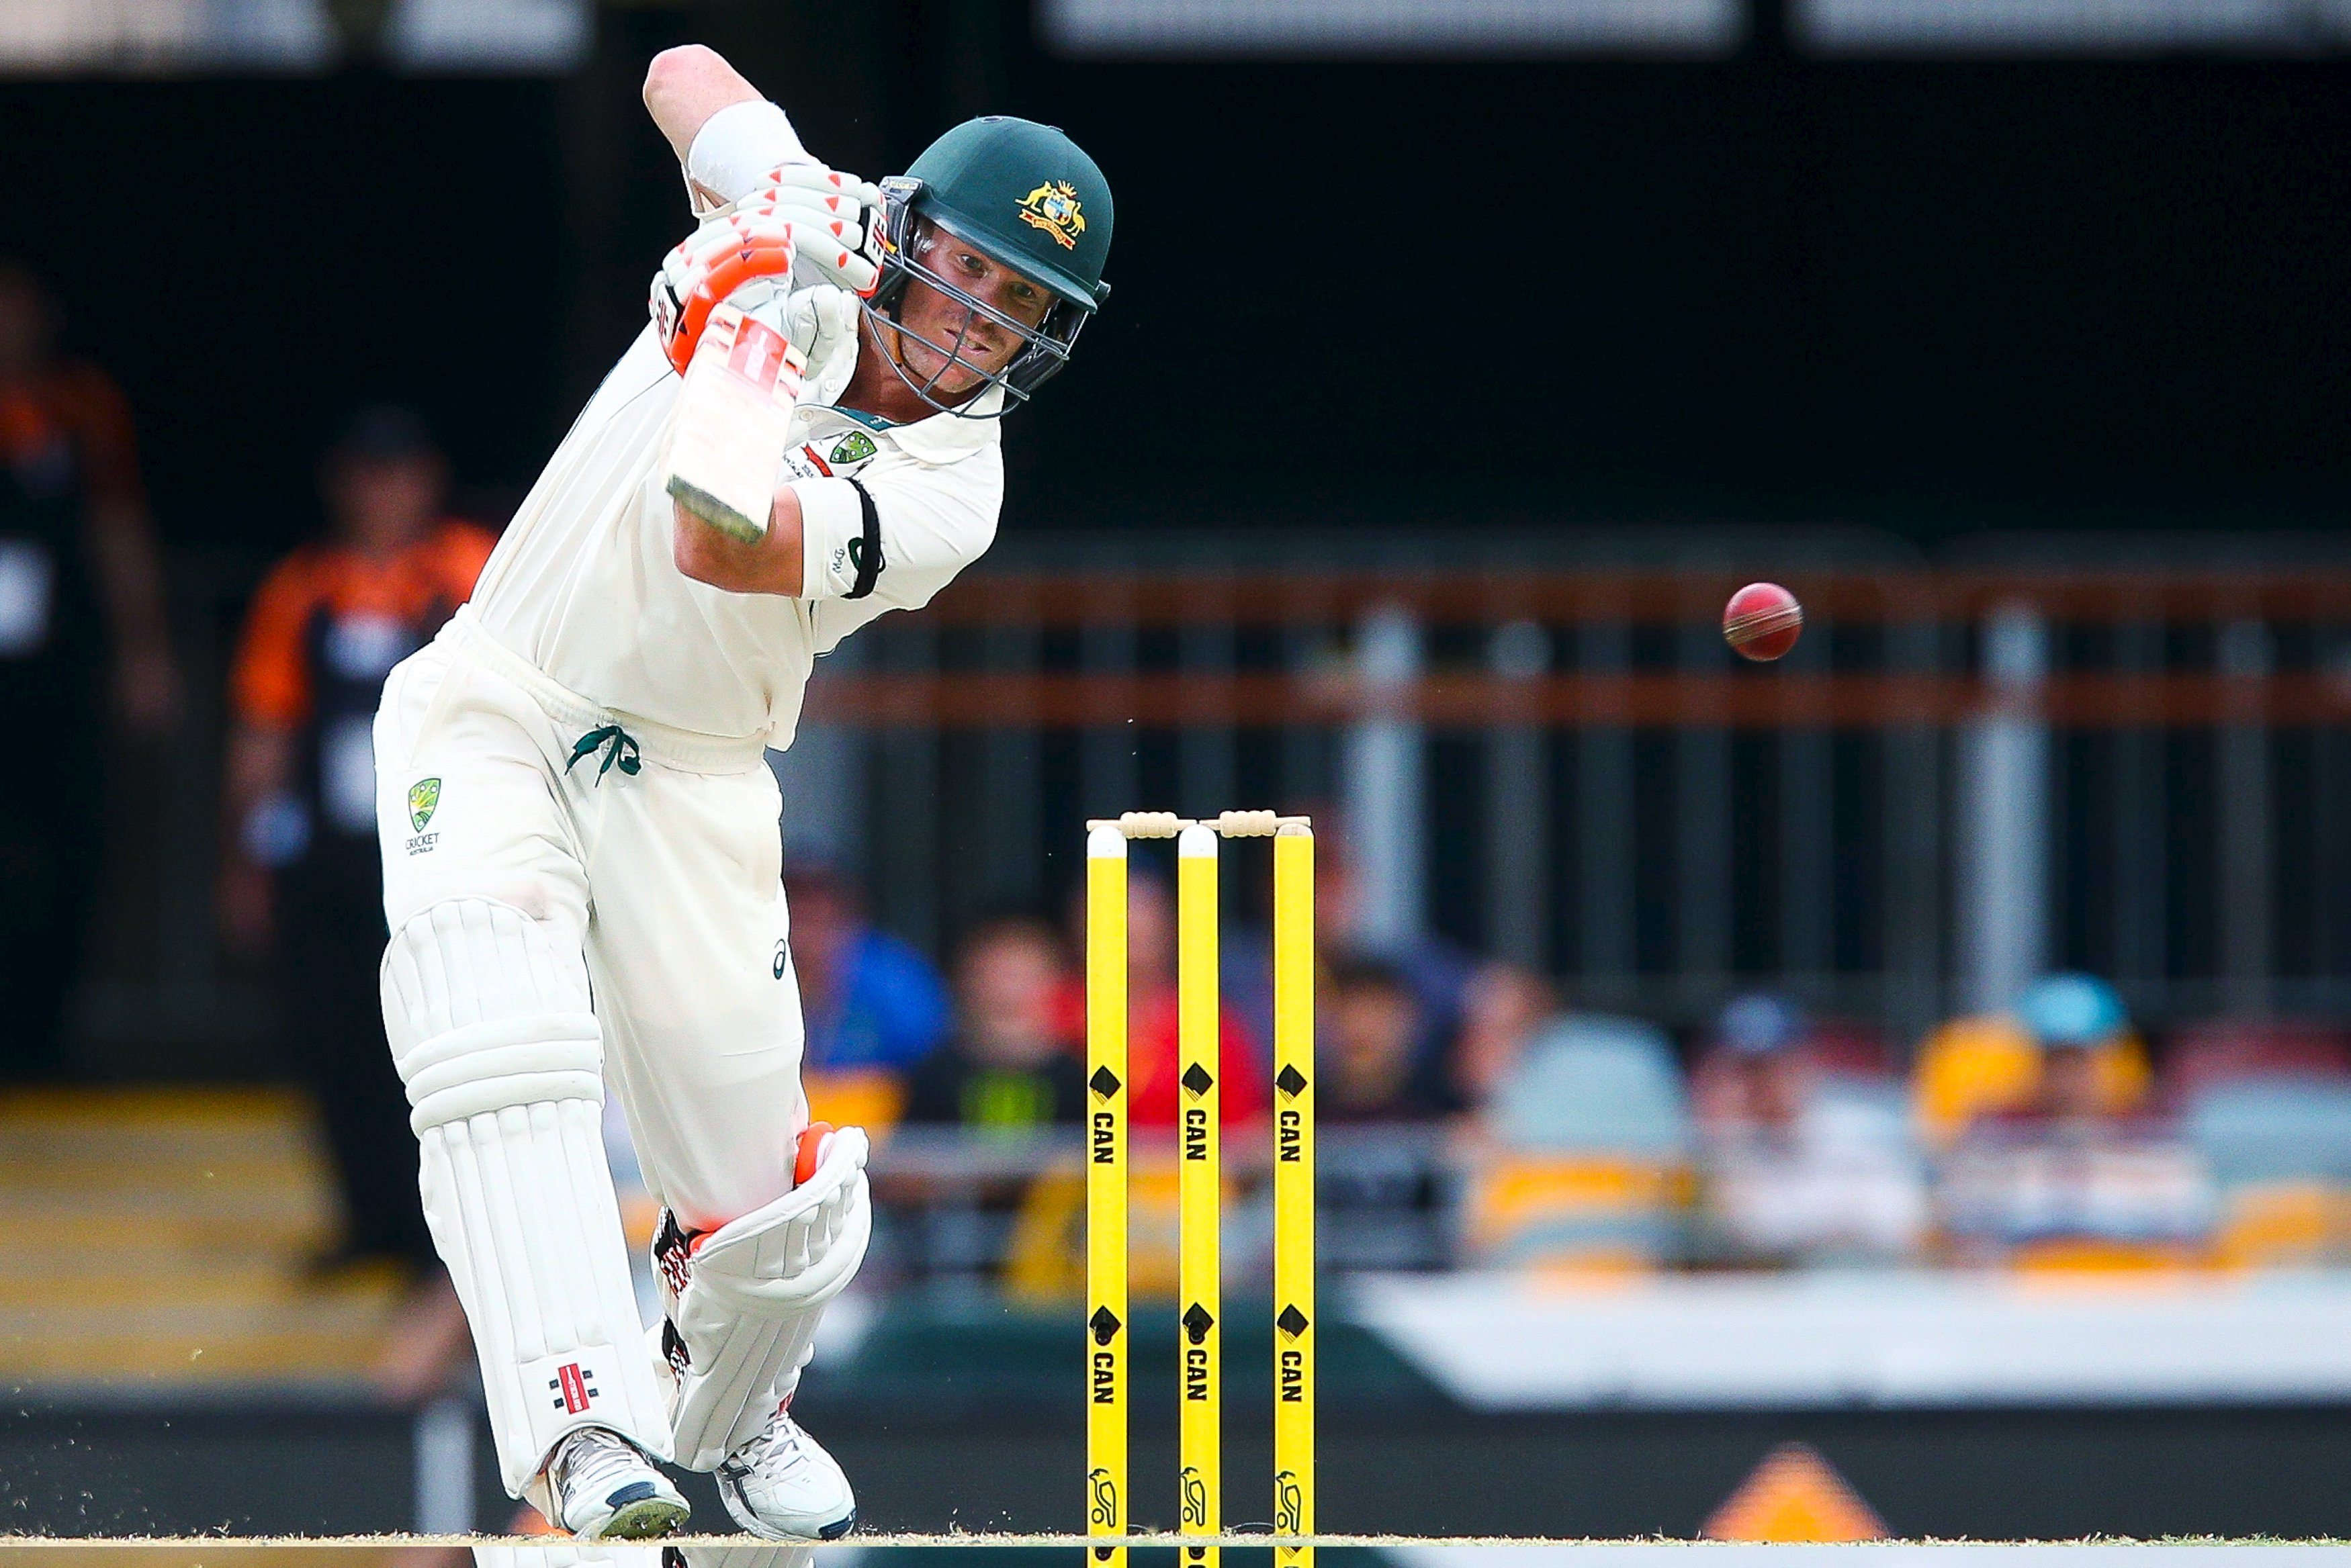 Australian batsman David Warner cover drives for his century during the first cricket test match between Australia and New Zealand in Brisbane, November 7, 2015. REUTERS/Patrick Hamilton